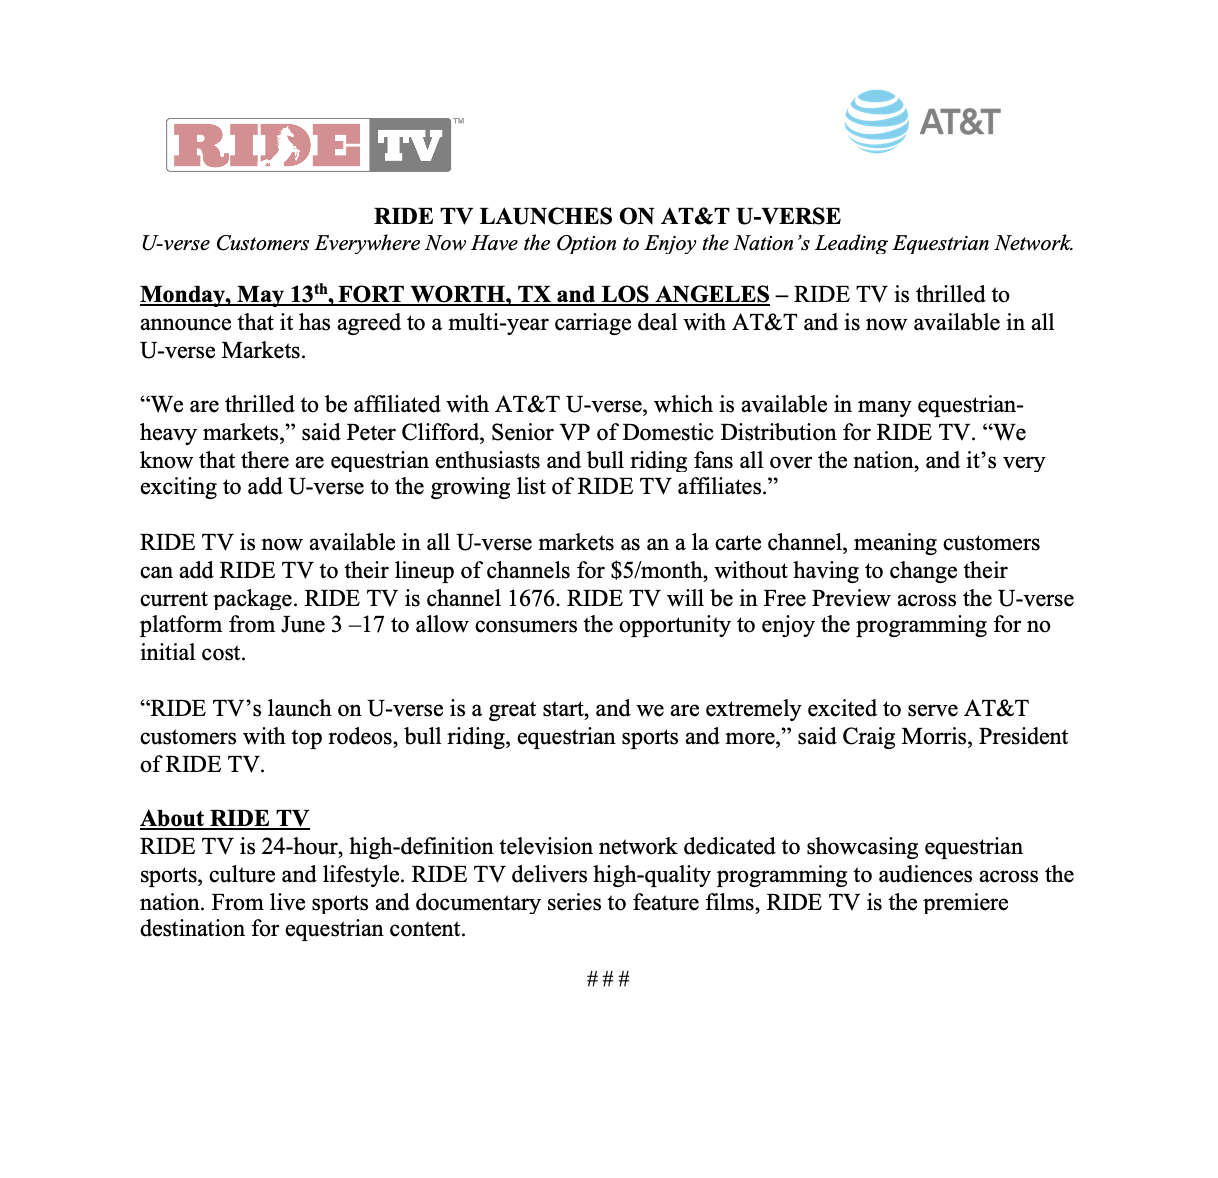 RIDE TV on AT&T U-Verse Announcement